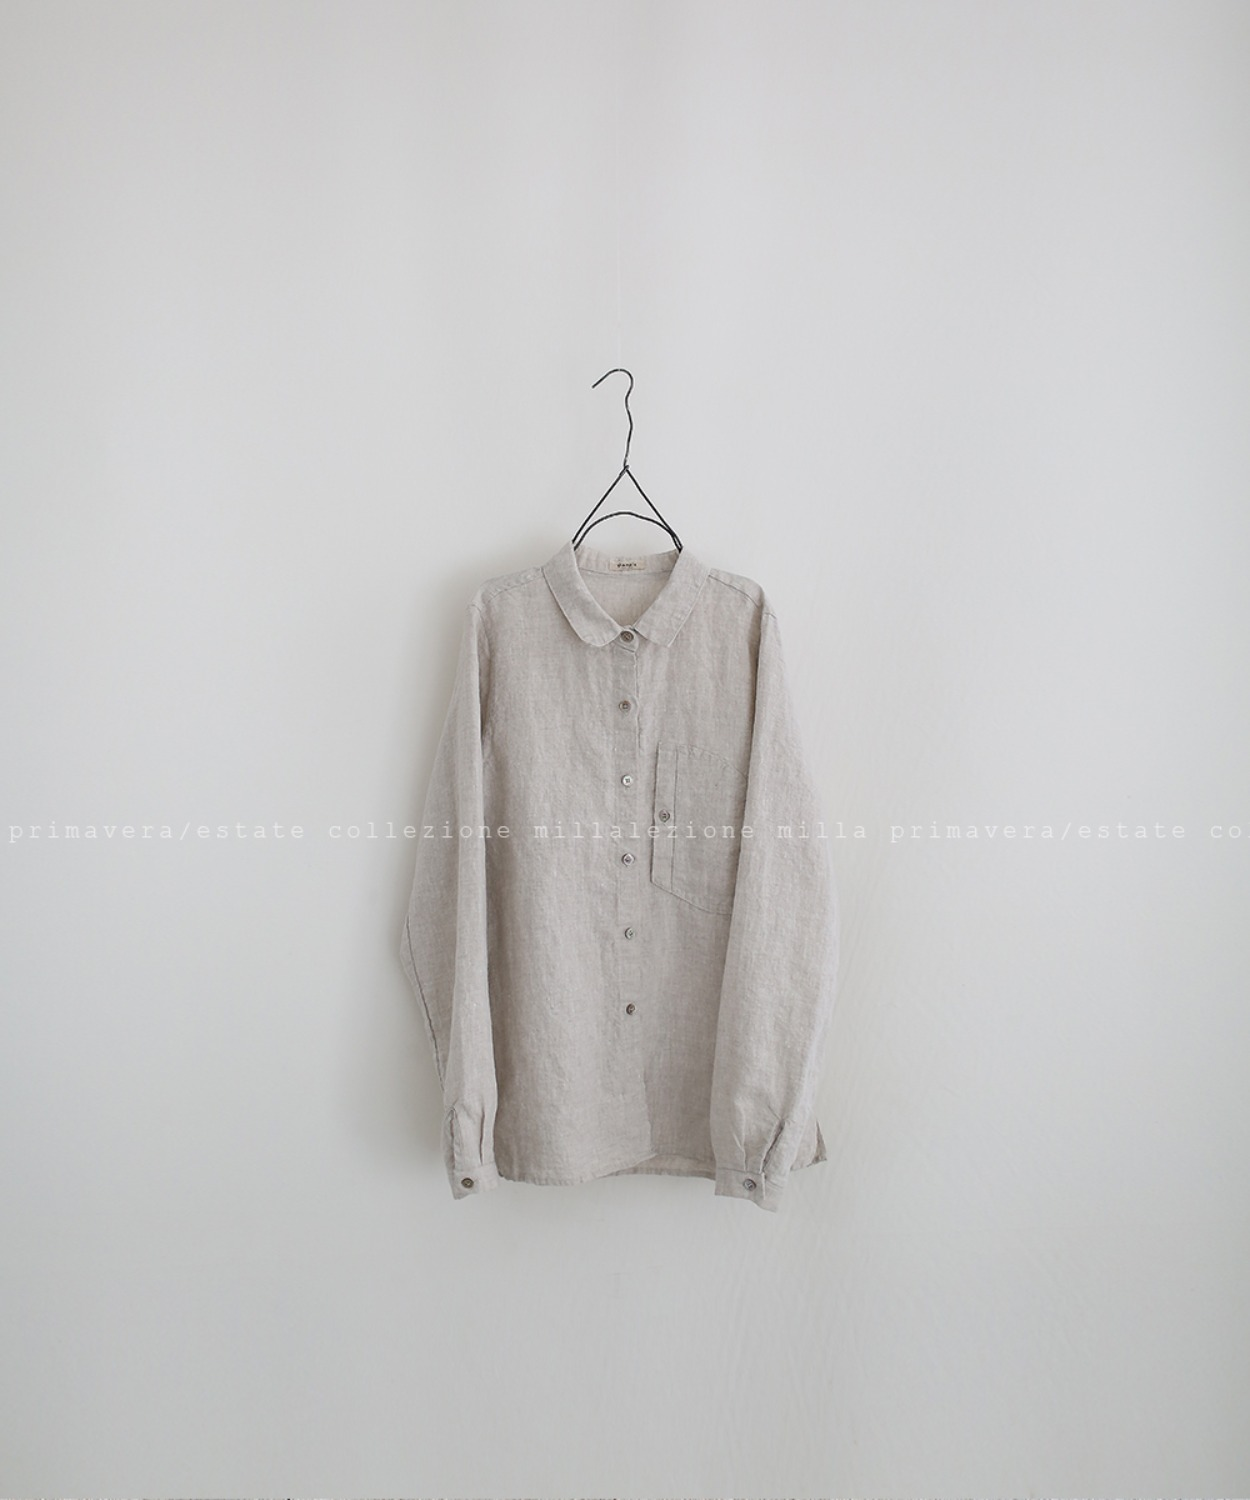 N°019 shirts&blouse40% sale